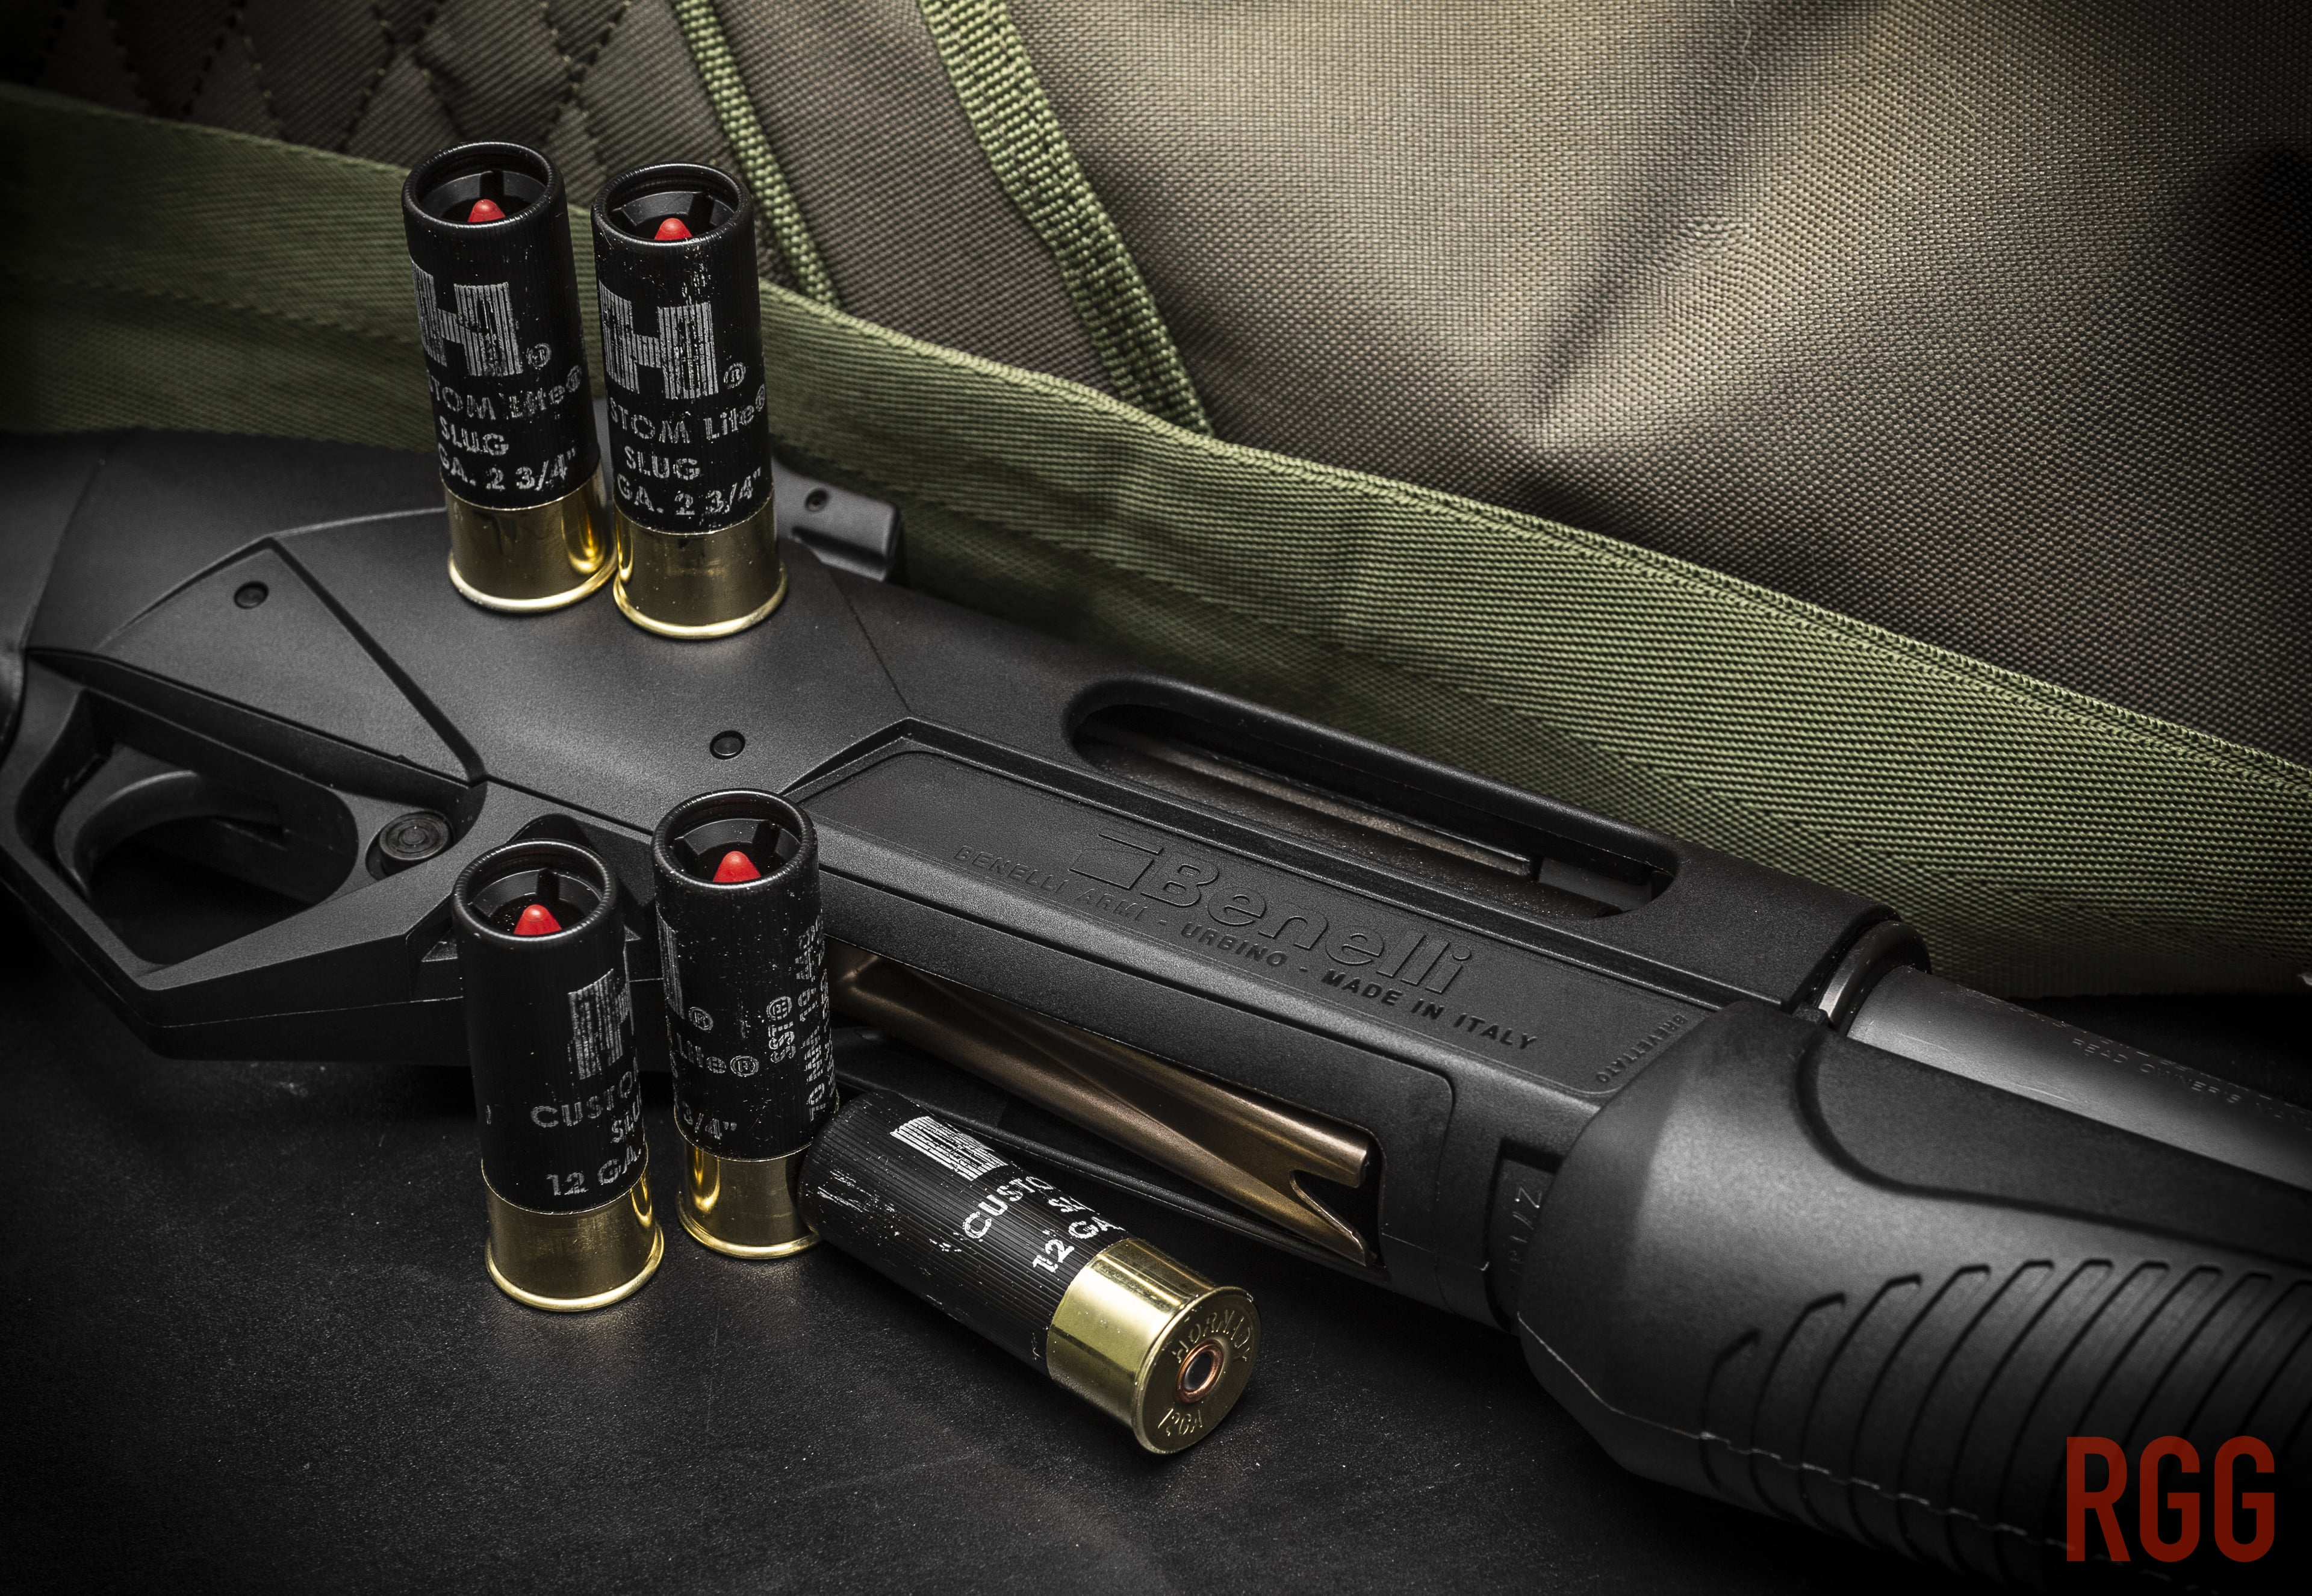 A Benelli SuperNova 12-gauge shotgun with Hornady Custom shells with the SST Projectile.